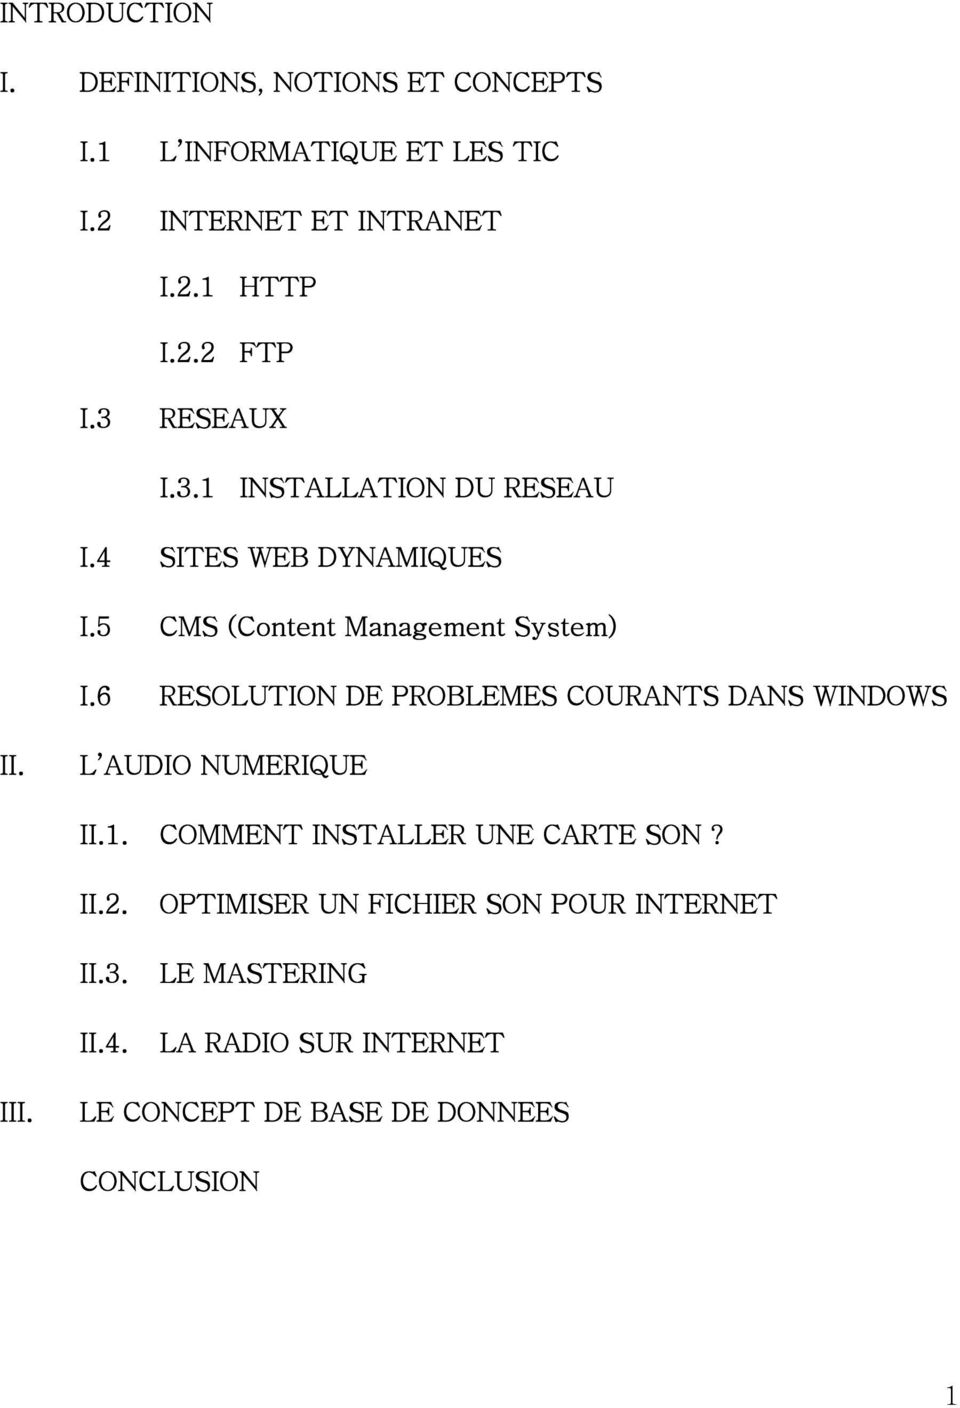 6 RESOLUTION DE PROBLEMES COURANTS DANS WINDOWS II. L AUDIO NUMERIQUE II.1. COMMENT INSTALLER UNE CARTE SON? II.2. II.3.